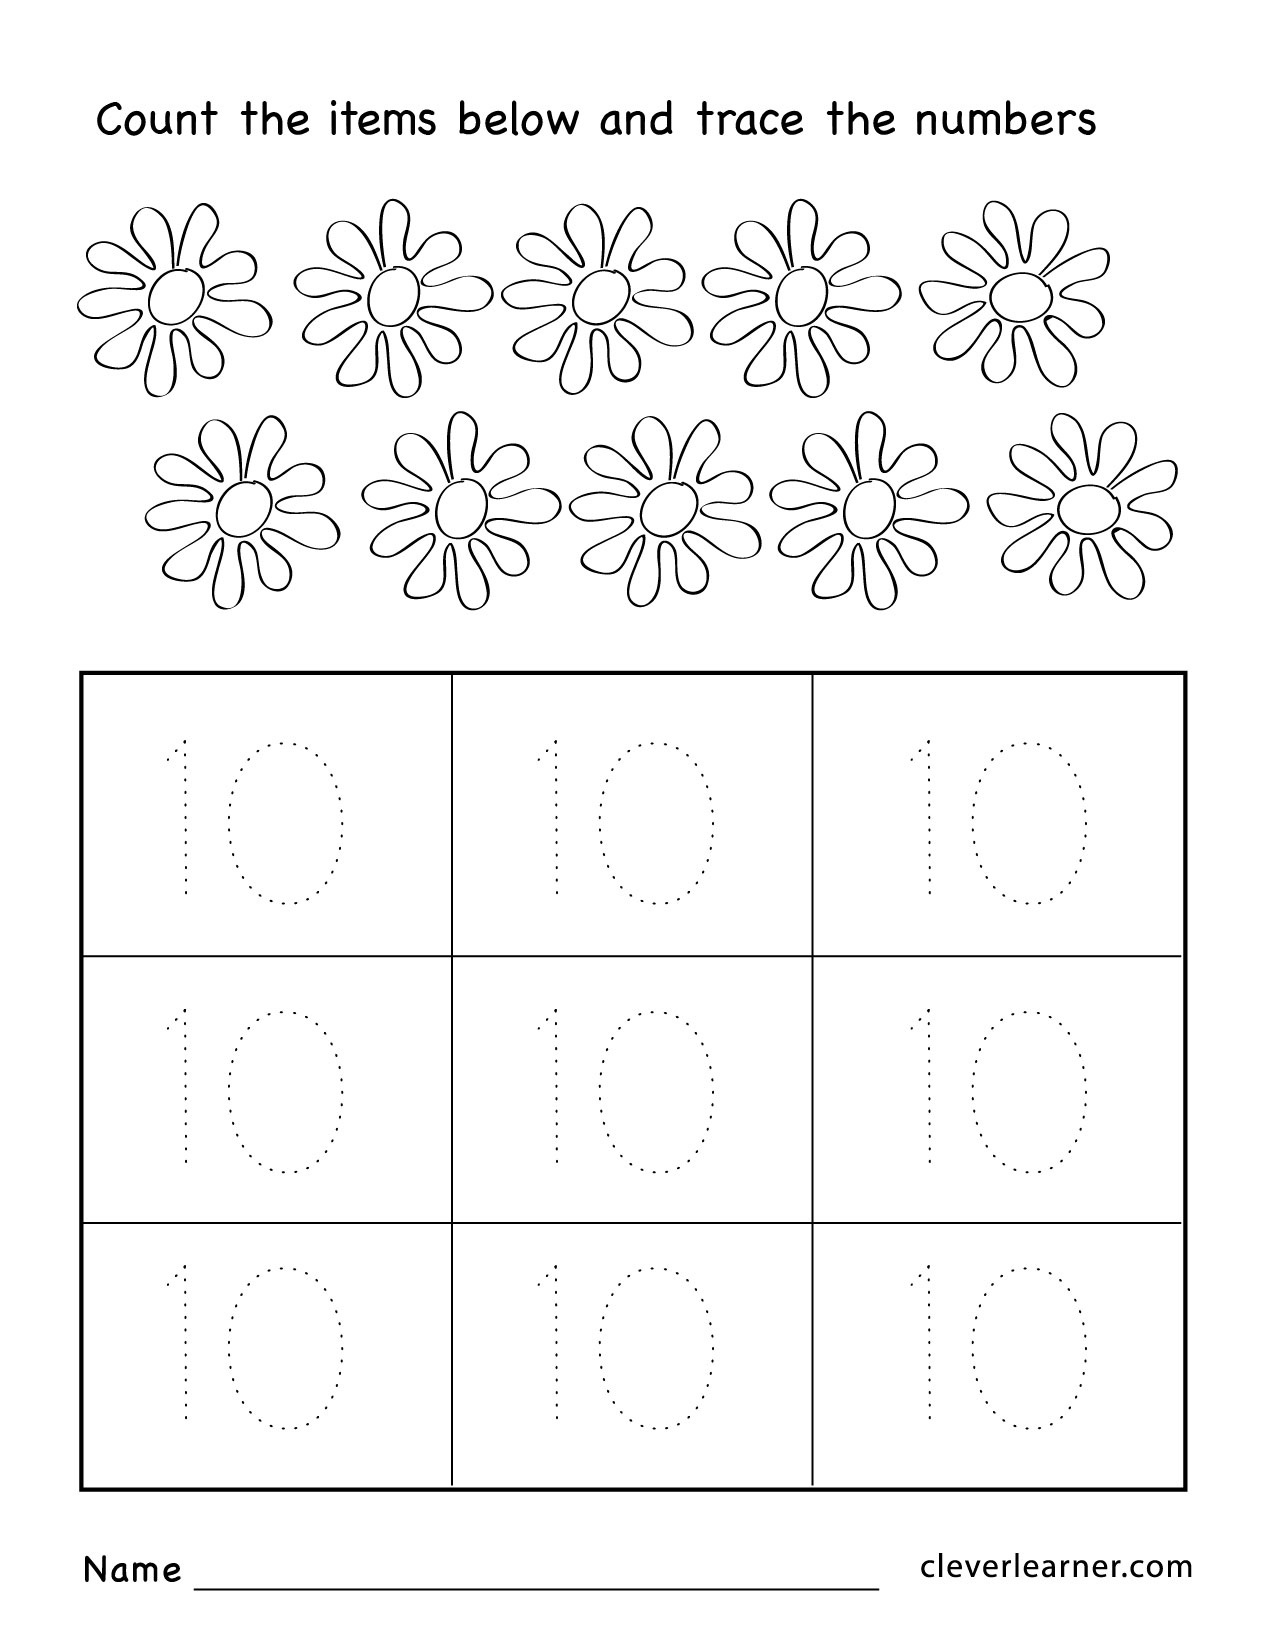 Number Ten Writing, Counting And Identification Printable Worksheets - Free Printable Worksheets For Kids